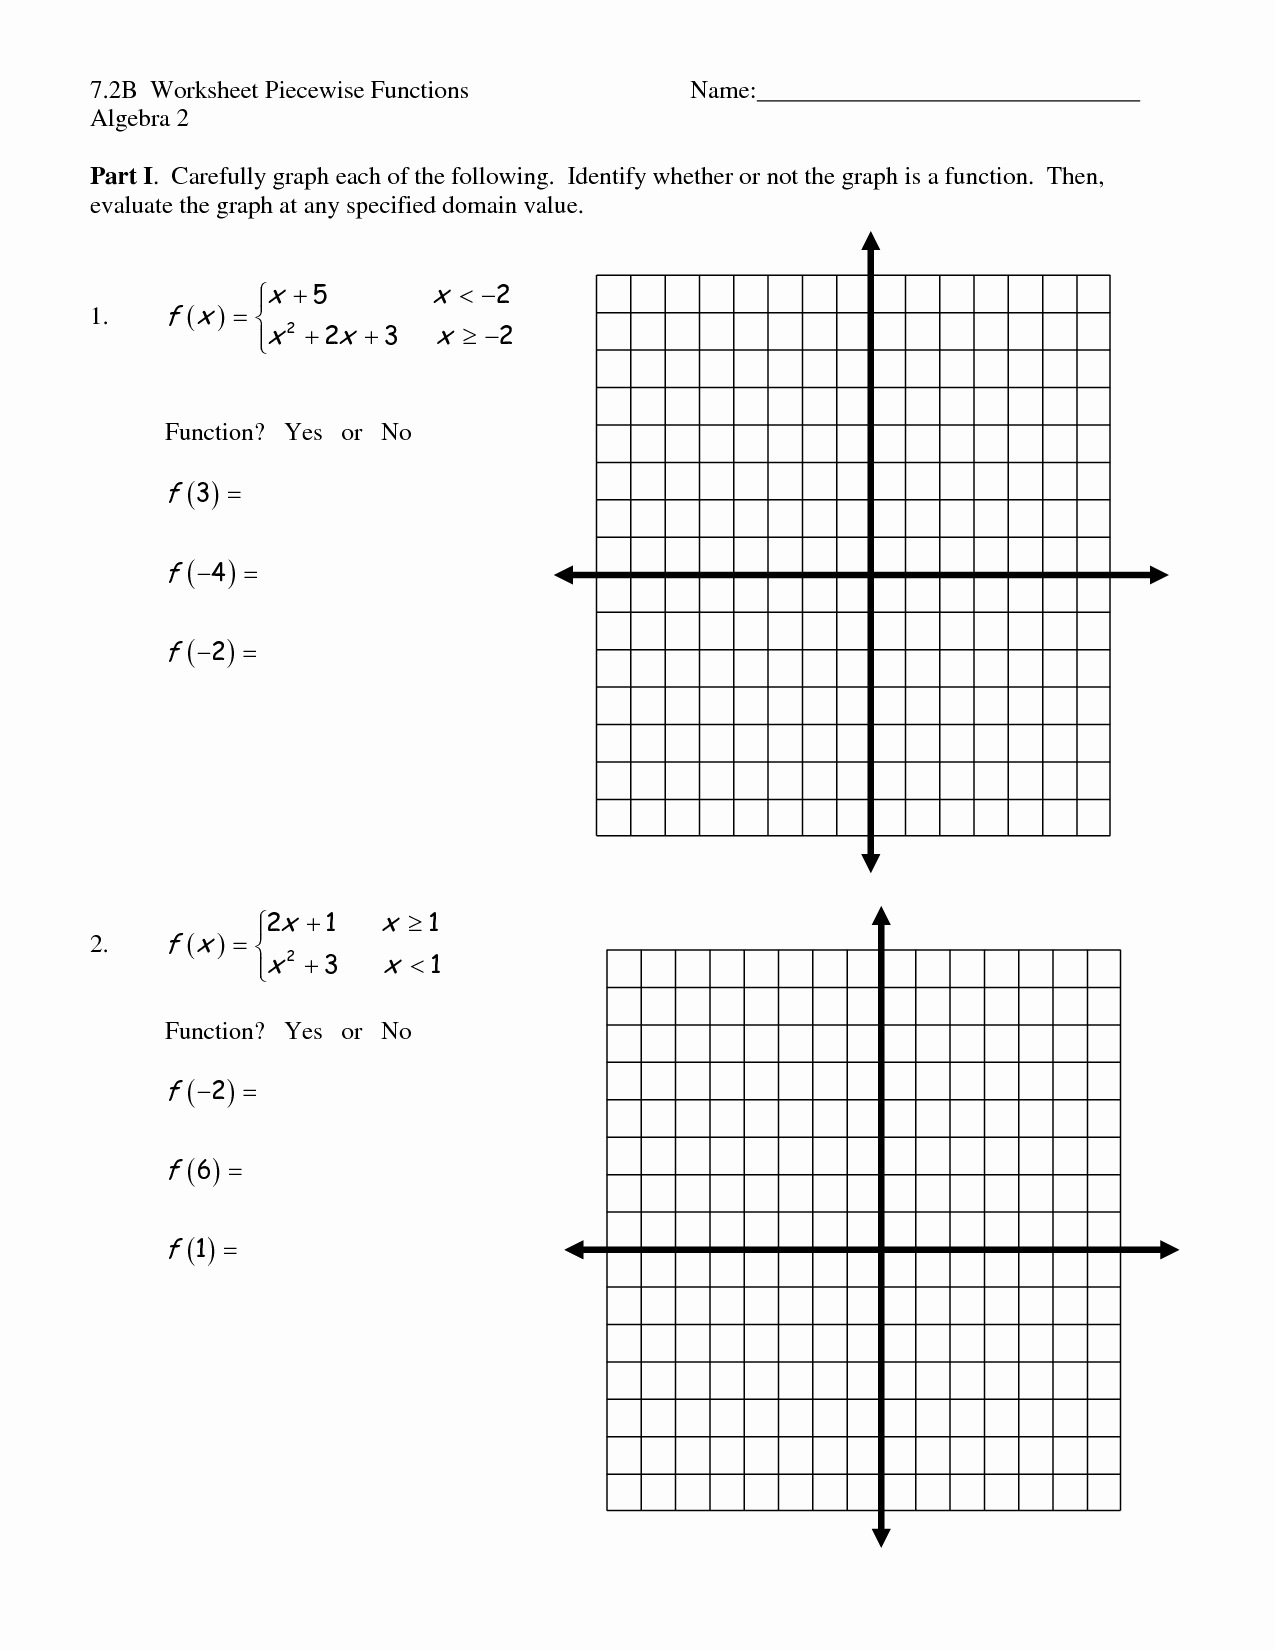 Worksheet Piecewise Functions Algebra 2 Beautiful 17 Best Of Graph Functions Worksheets Algebra